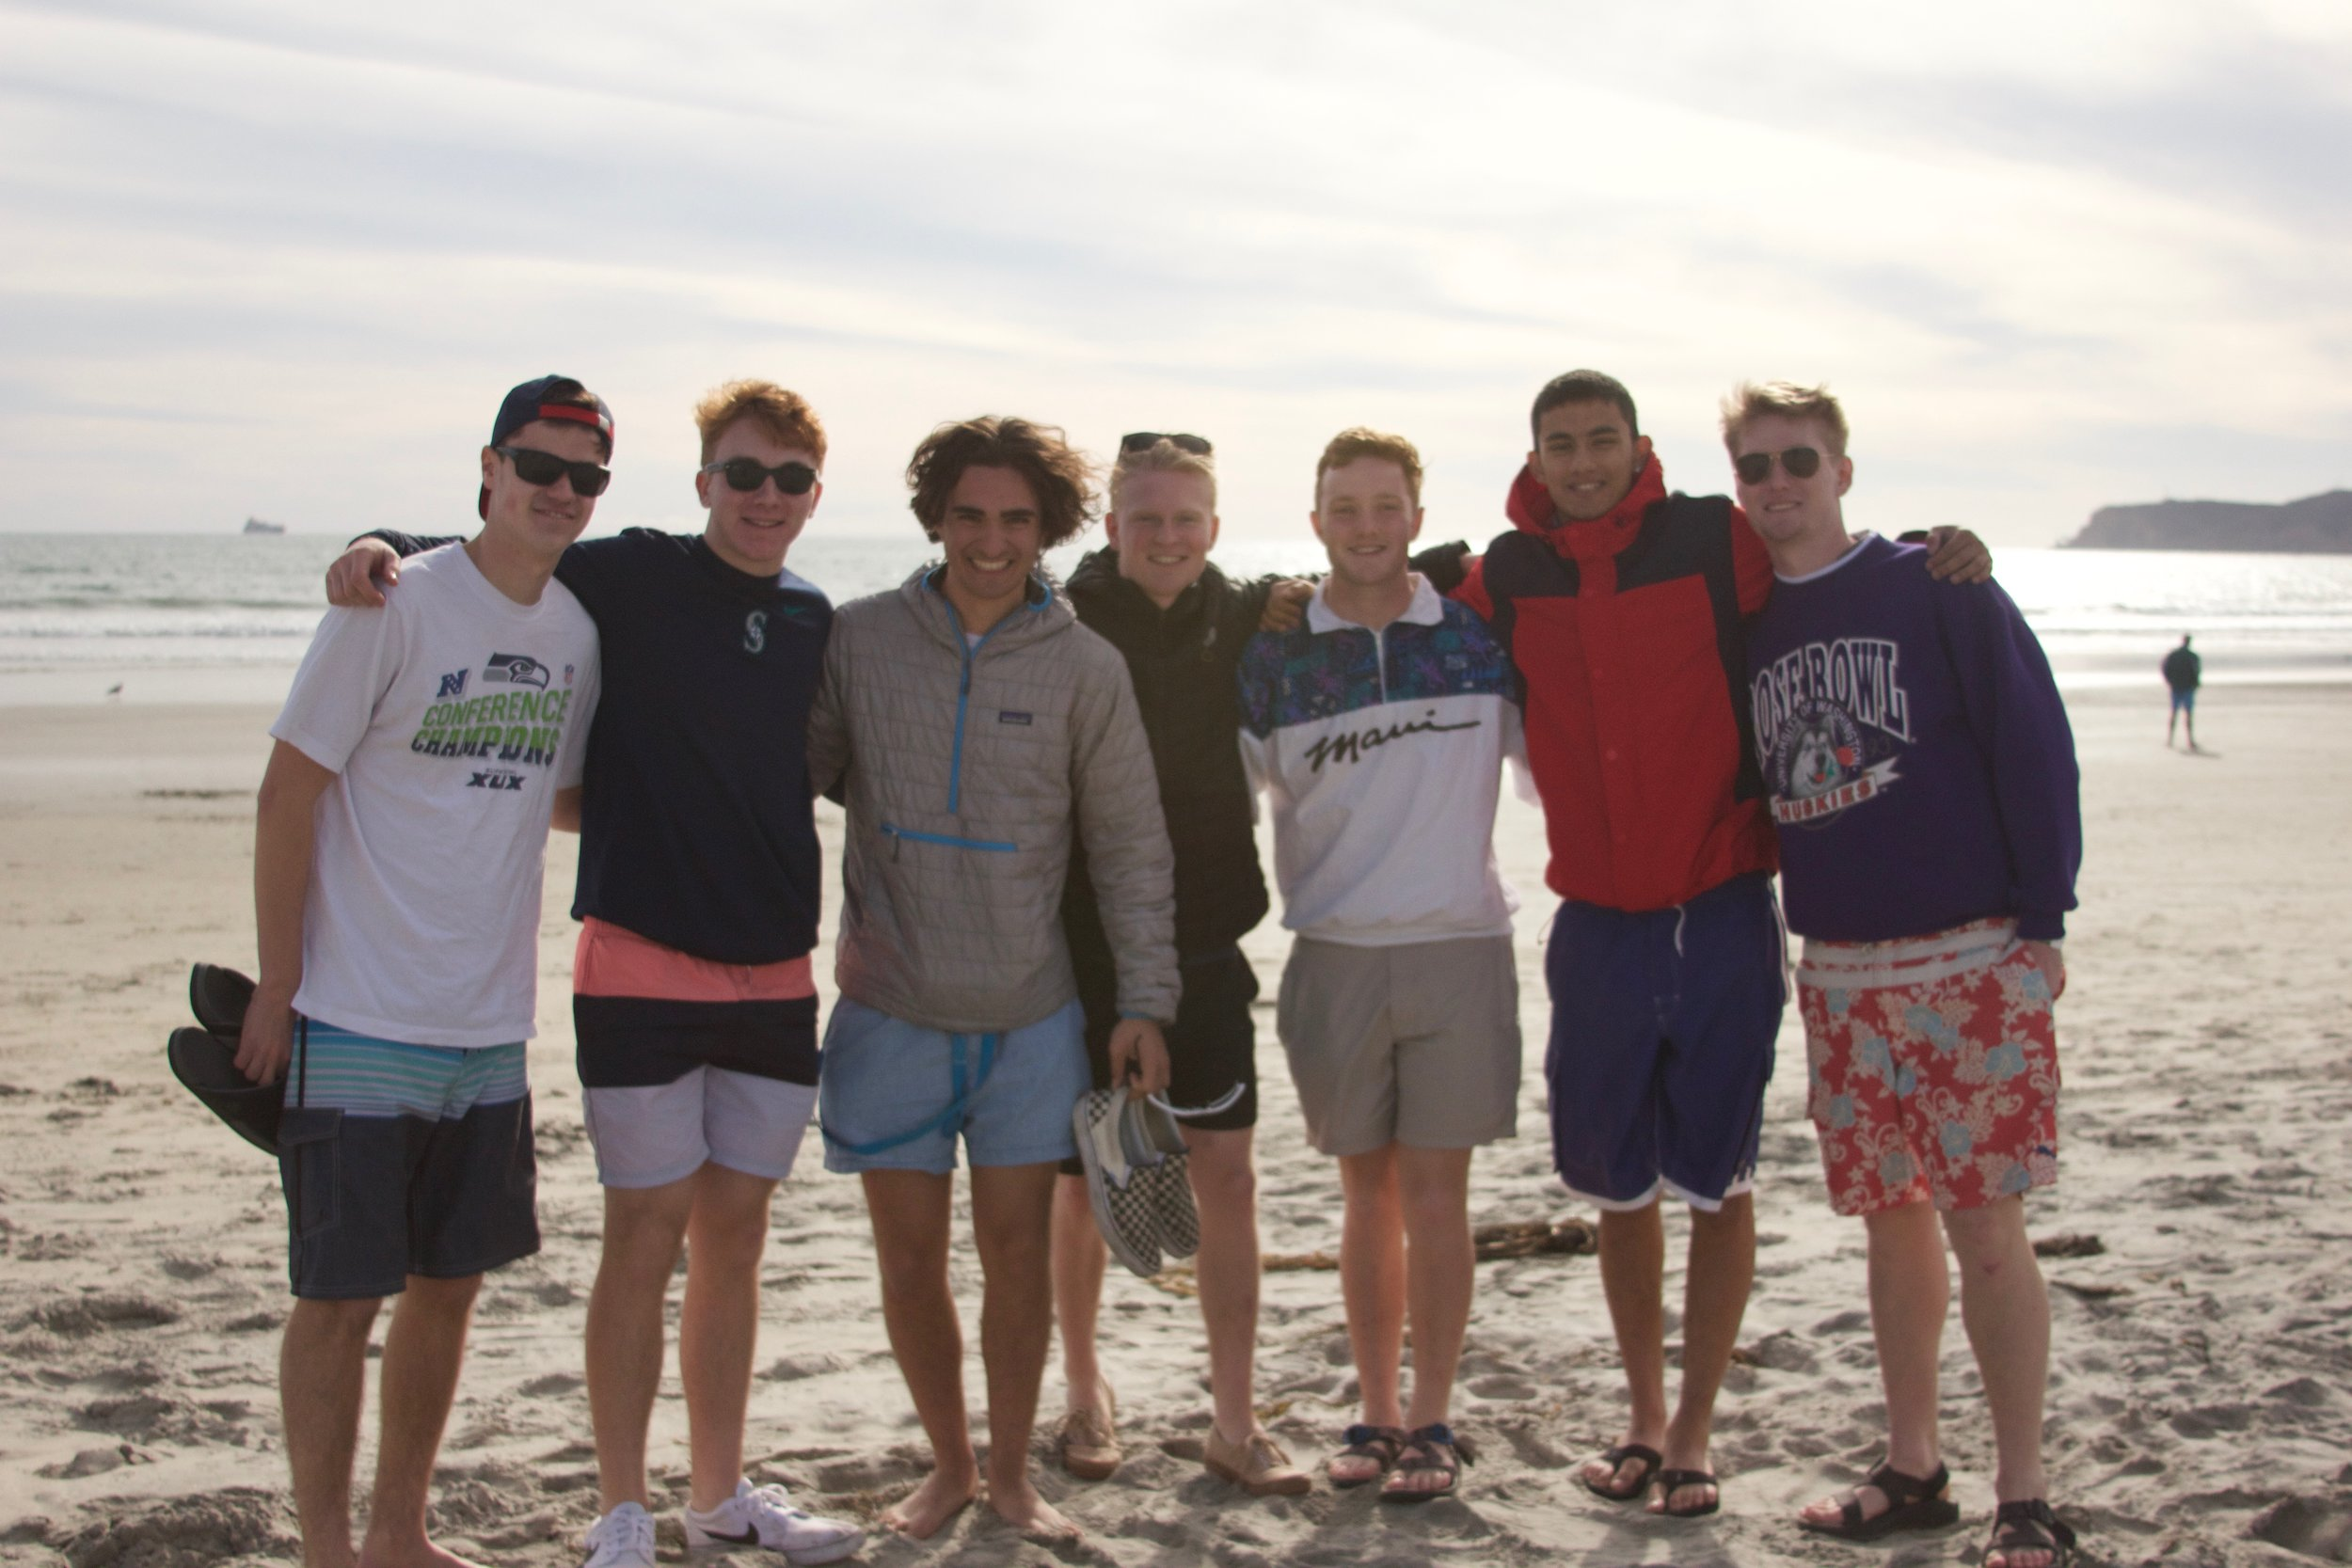 Spring Break Road Trip - For the past several years the newest PC has completed a road trip from Seattle to San Diego and back stopping at brothers houses along the way. This past year 22 out of the 29 freshmen participated.